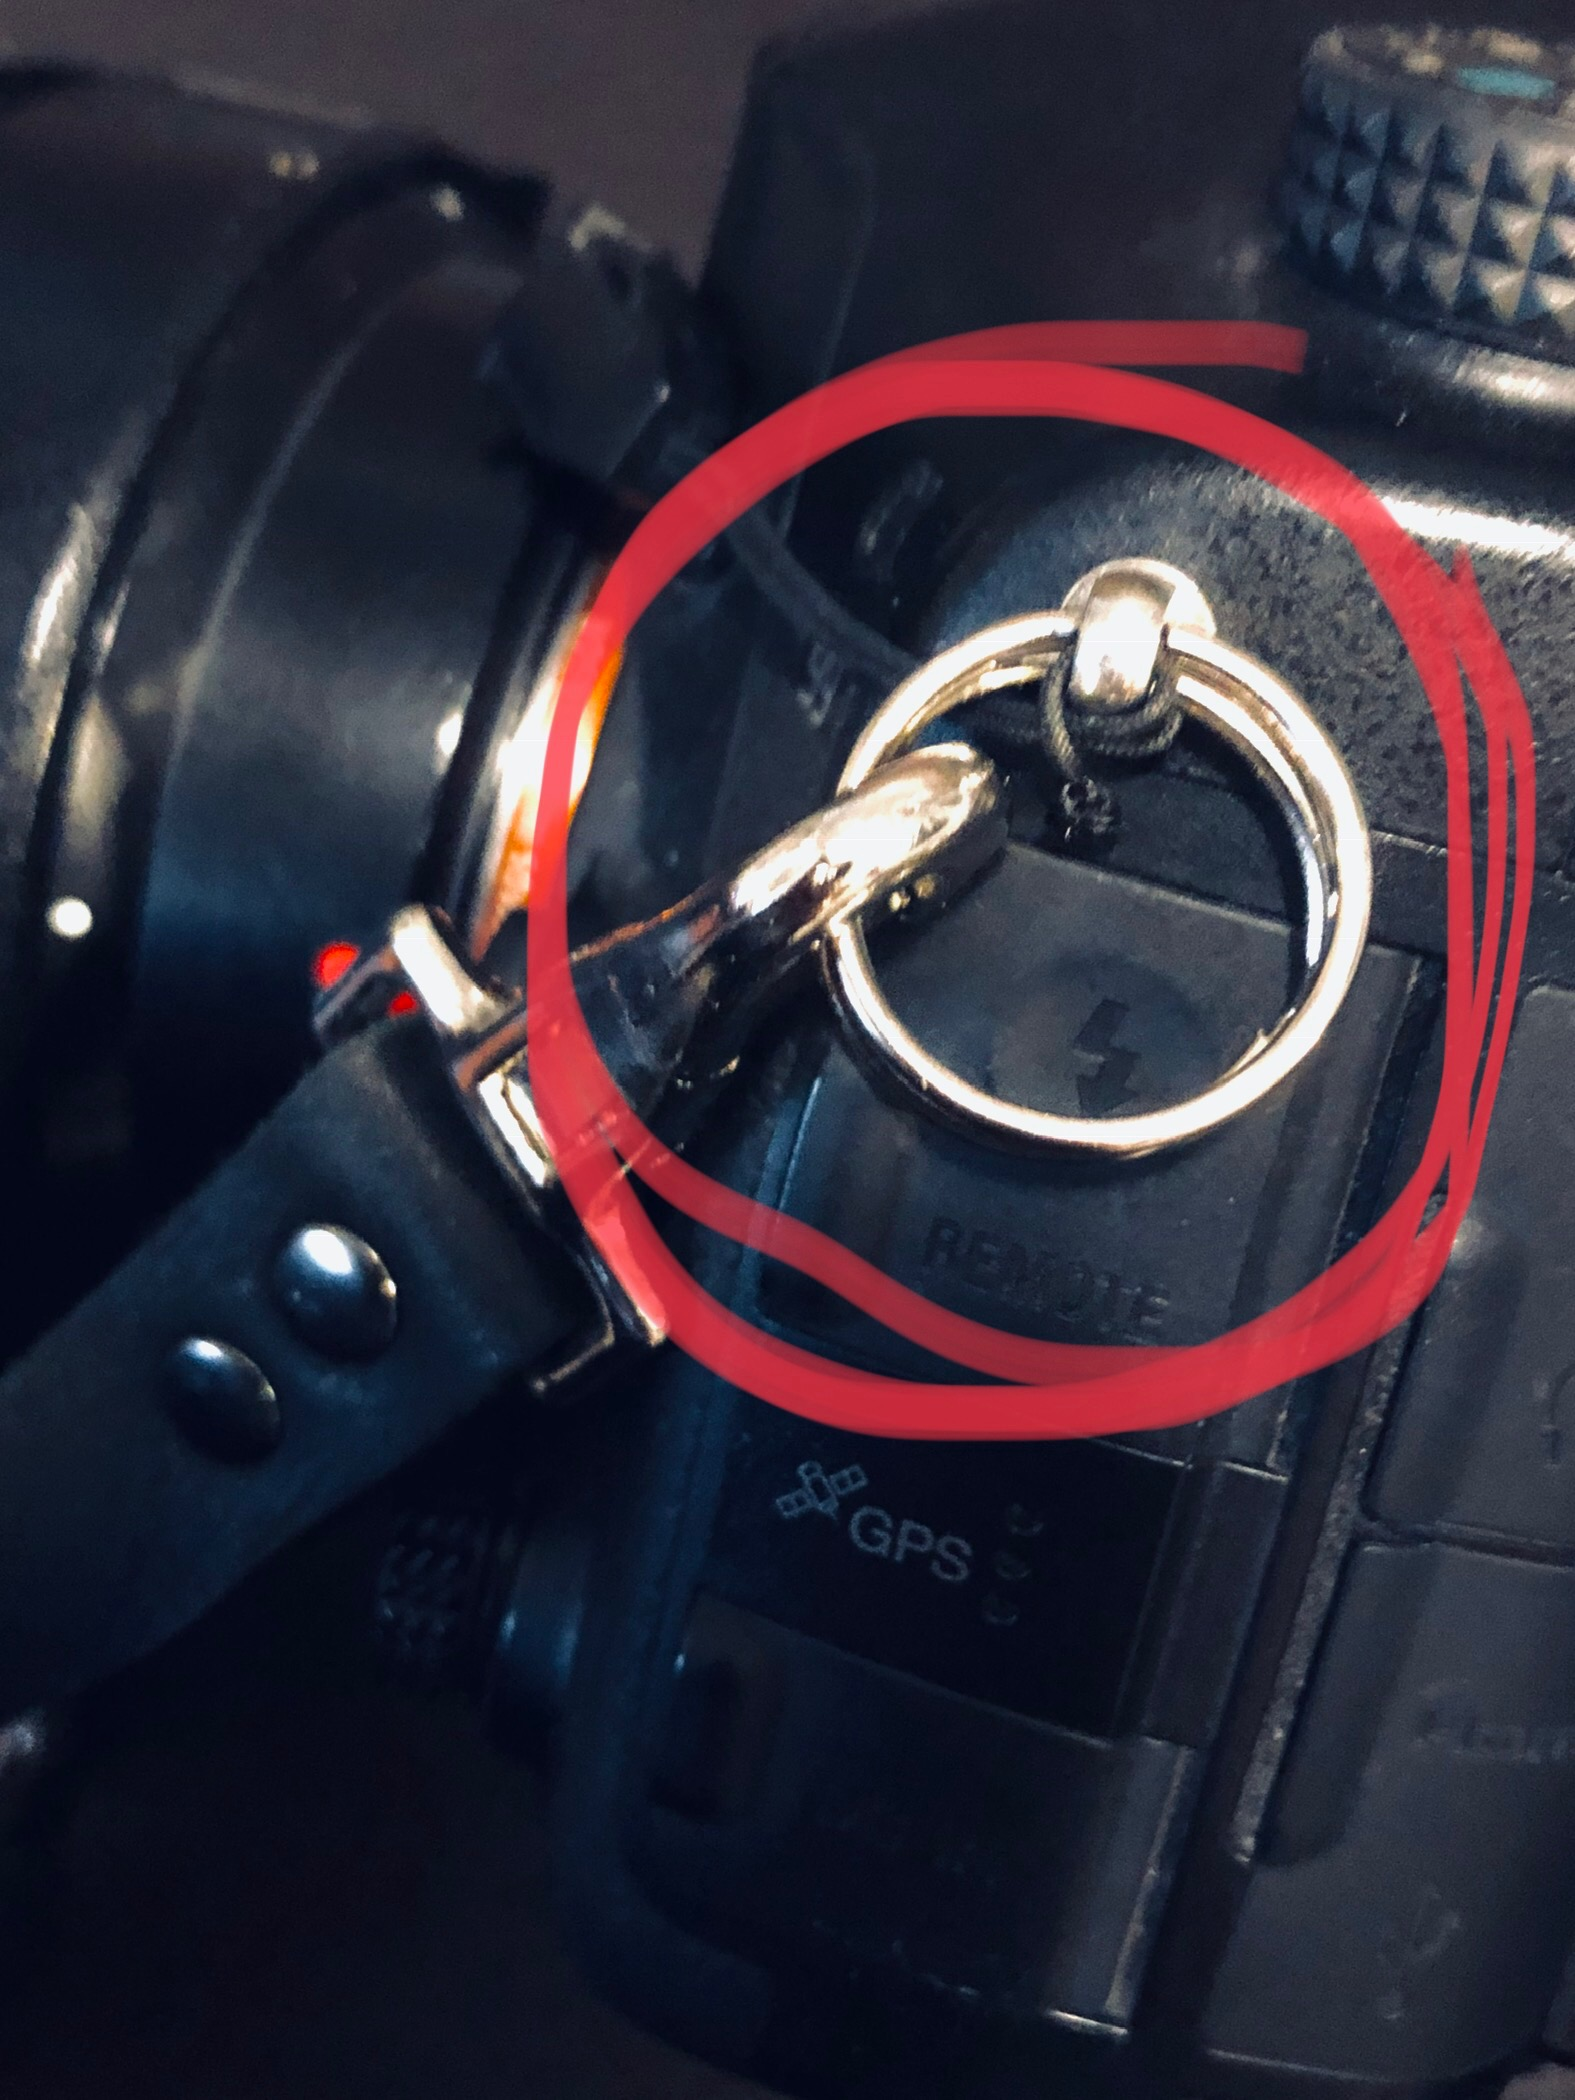 Rings to clip onto Camera